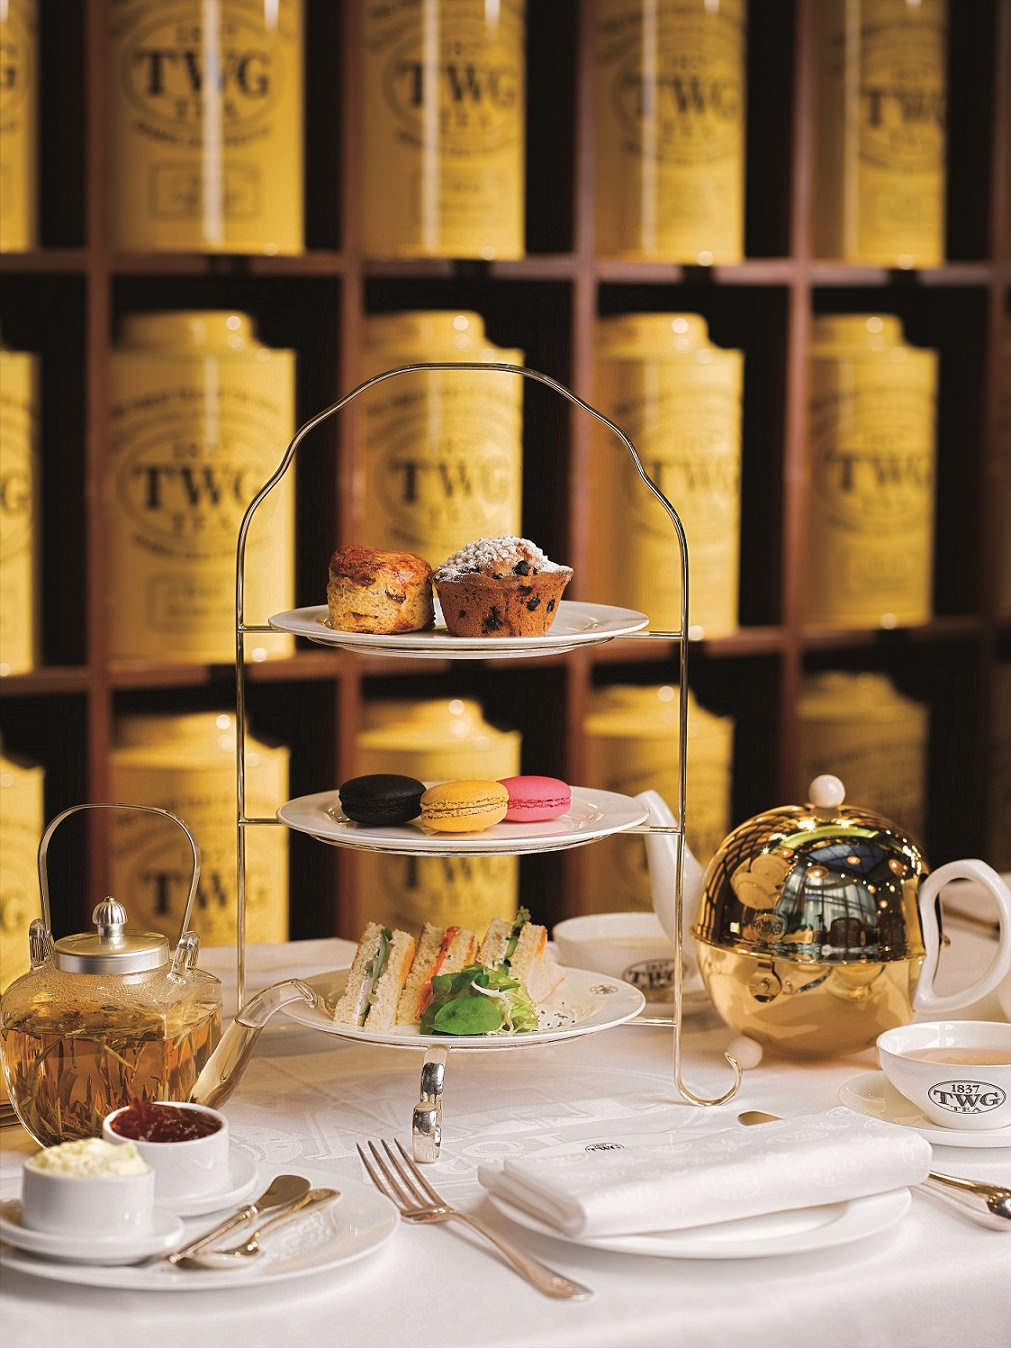 TWG Afternoon Tea Set.jpg